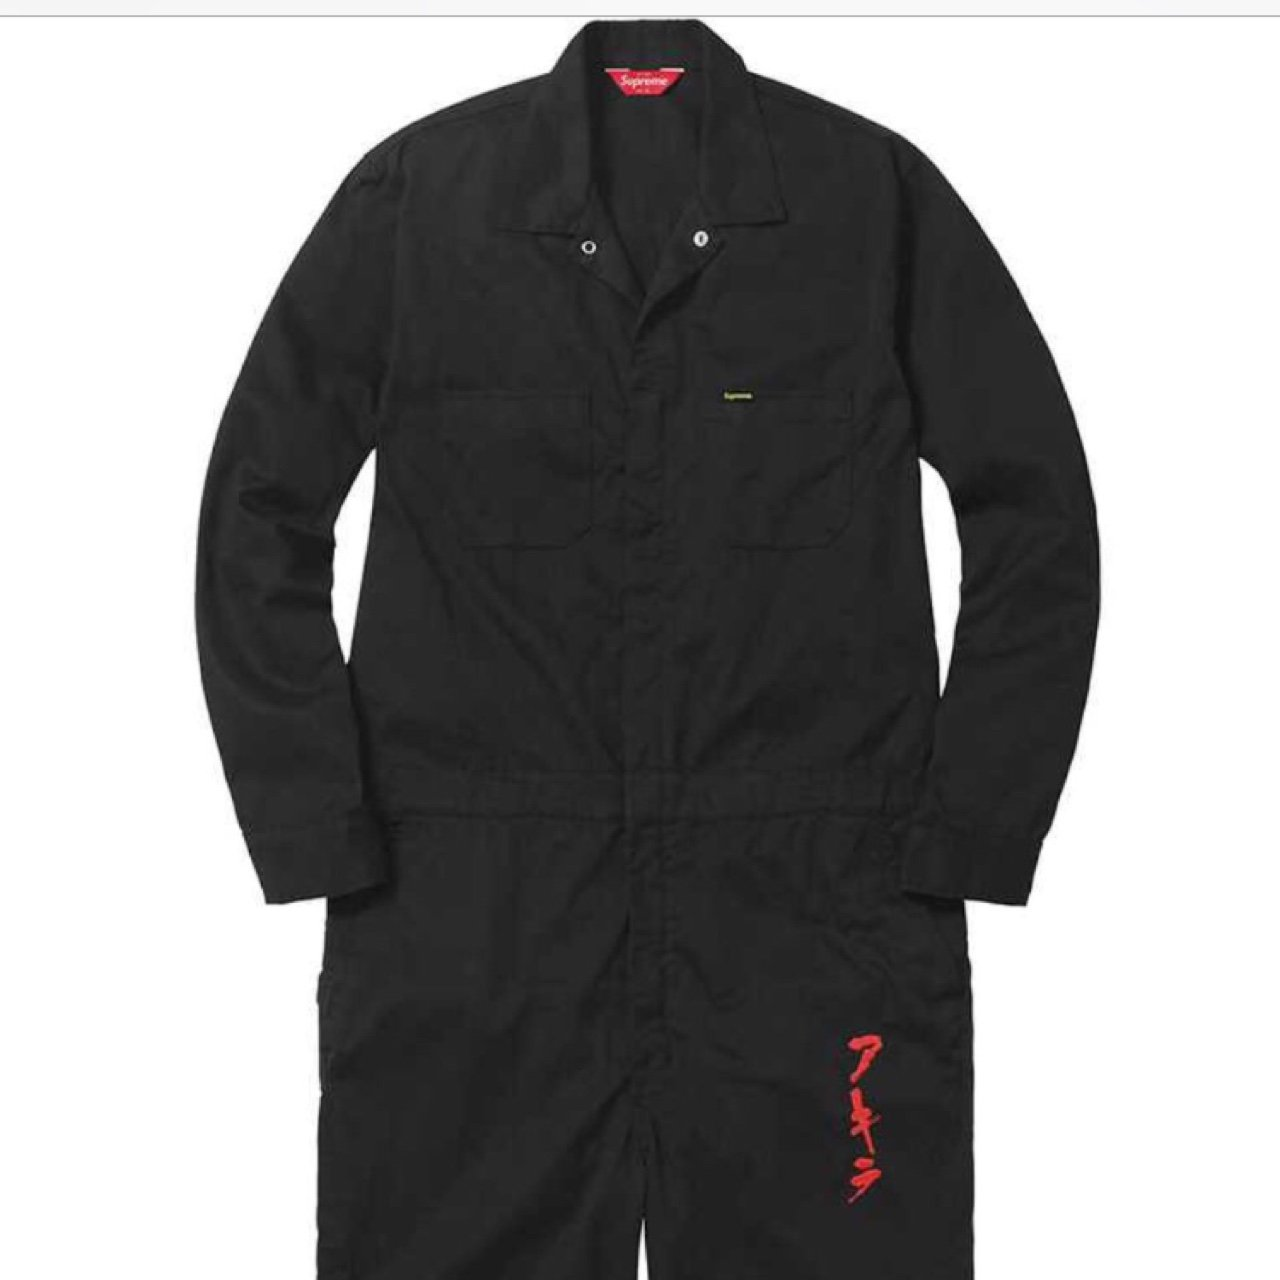 quality design 83a86 47a69 Akira x Supreme coveralls, size S. Sold out, deadstock. new, - Depop